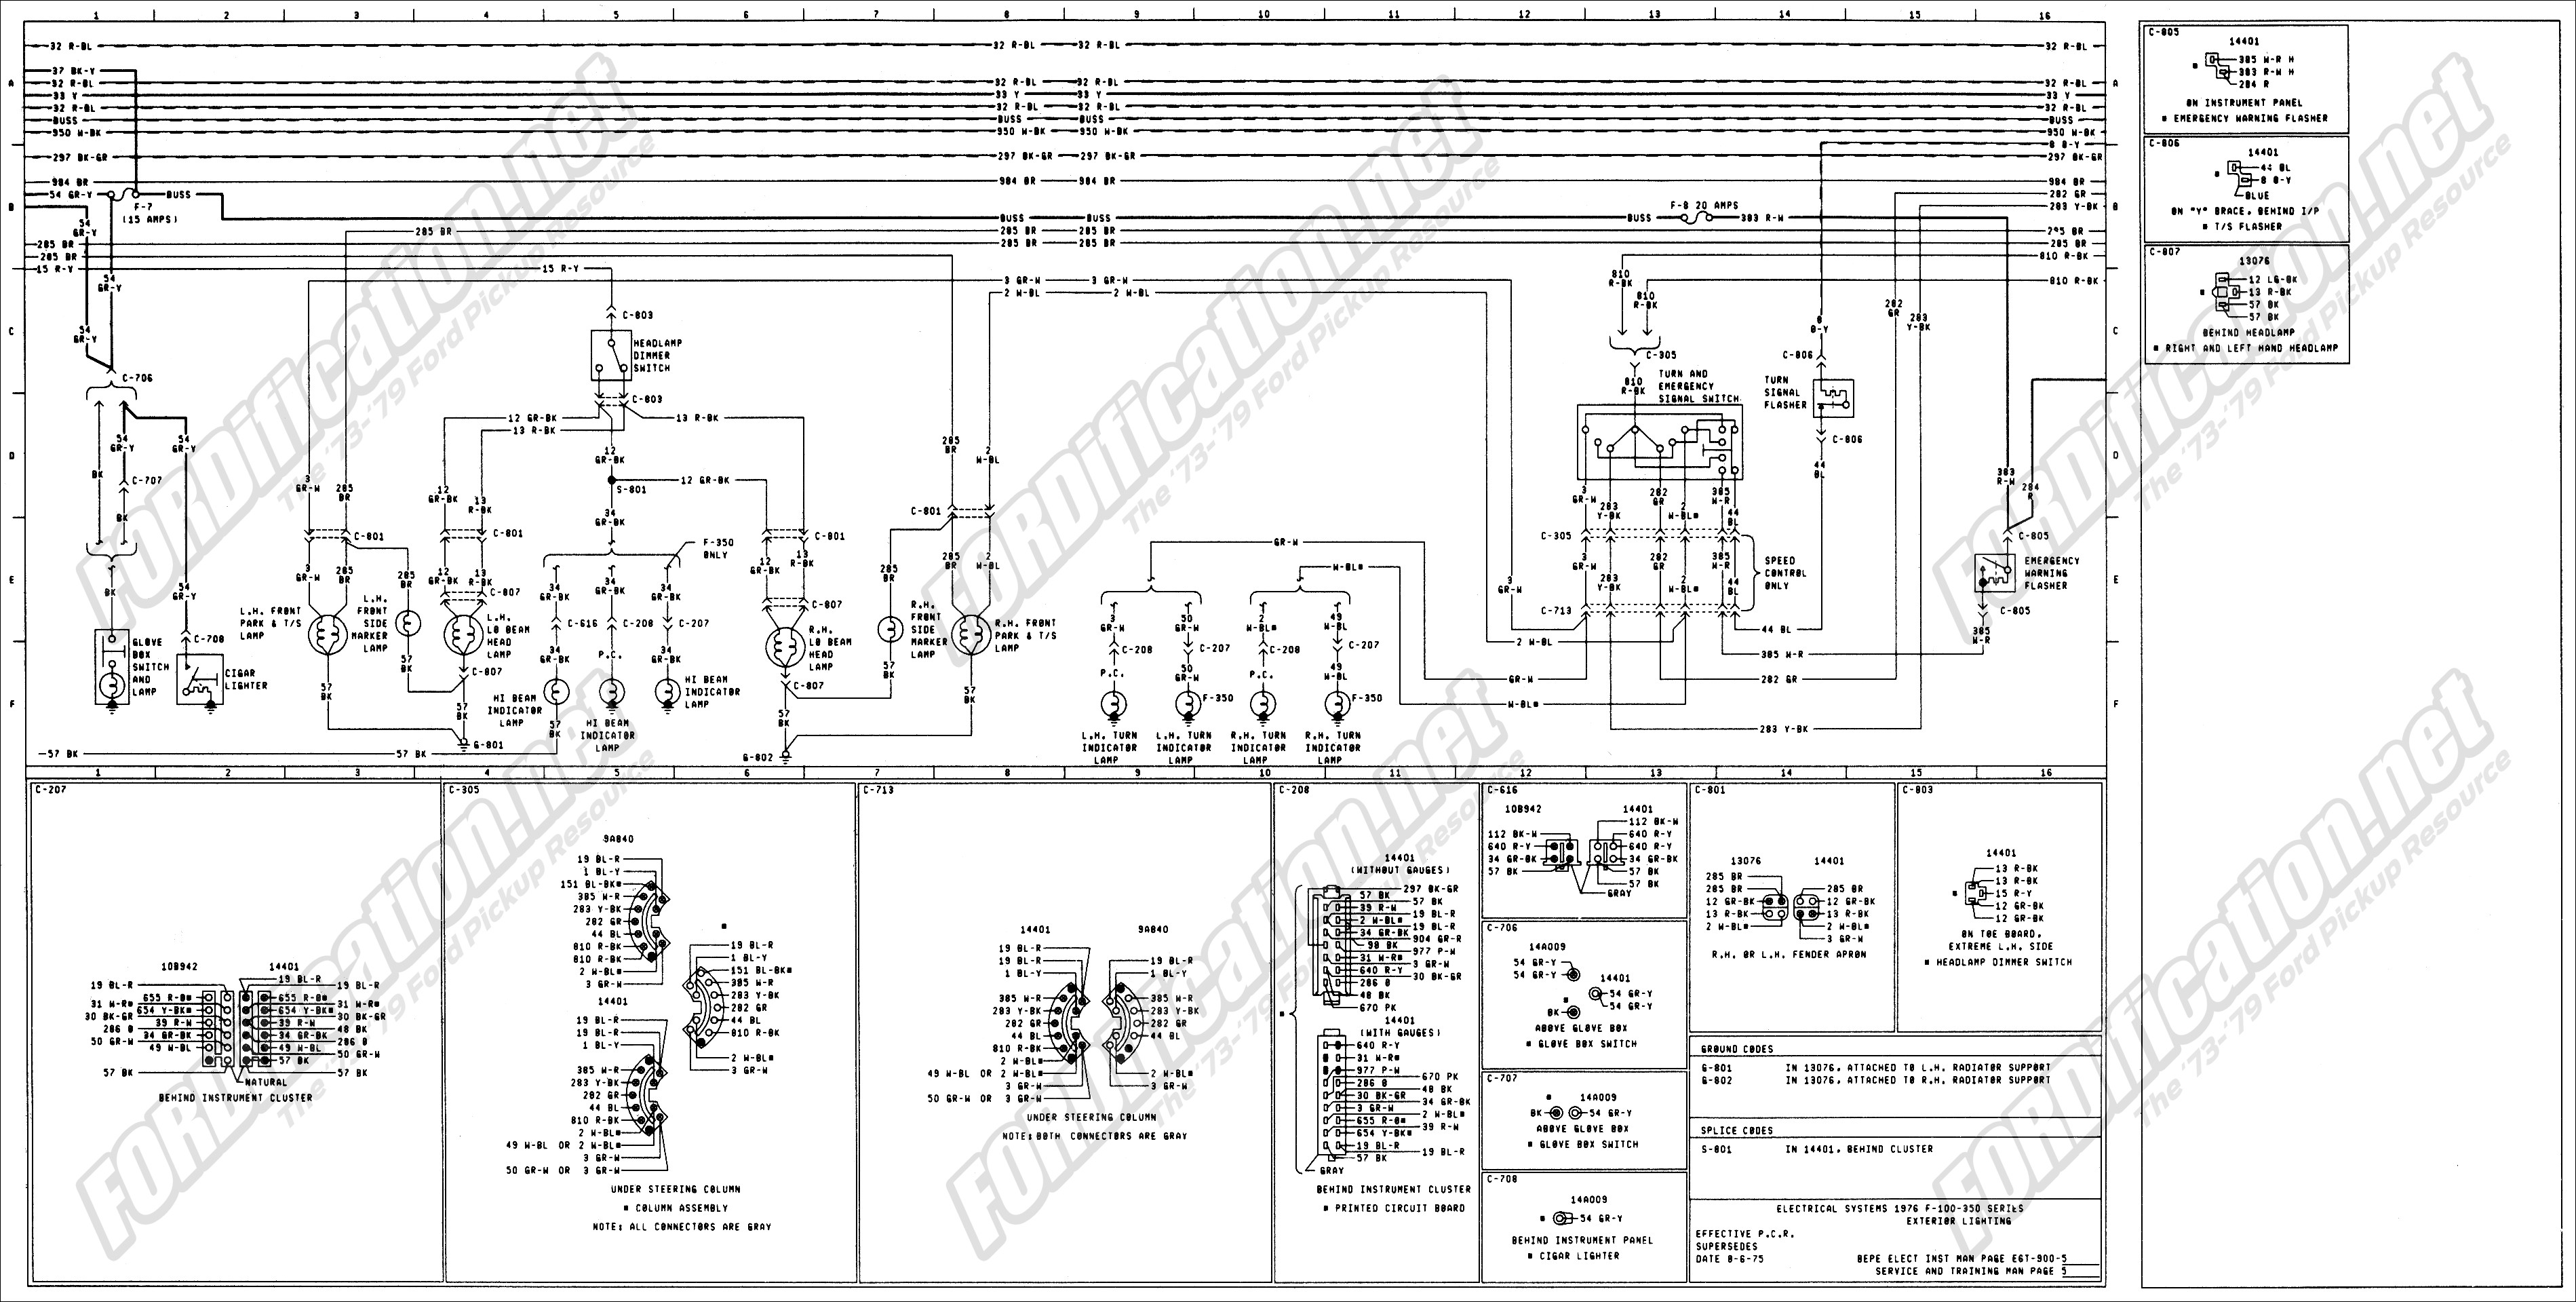 1973 Ford F 250 Heater Wiring - Wiring Diagram Inside  Ford F Wiring Diagram on 73 ford f250 steering, 73 ford f250 air conditioning, 73 dodge charger wiring diagram,